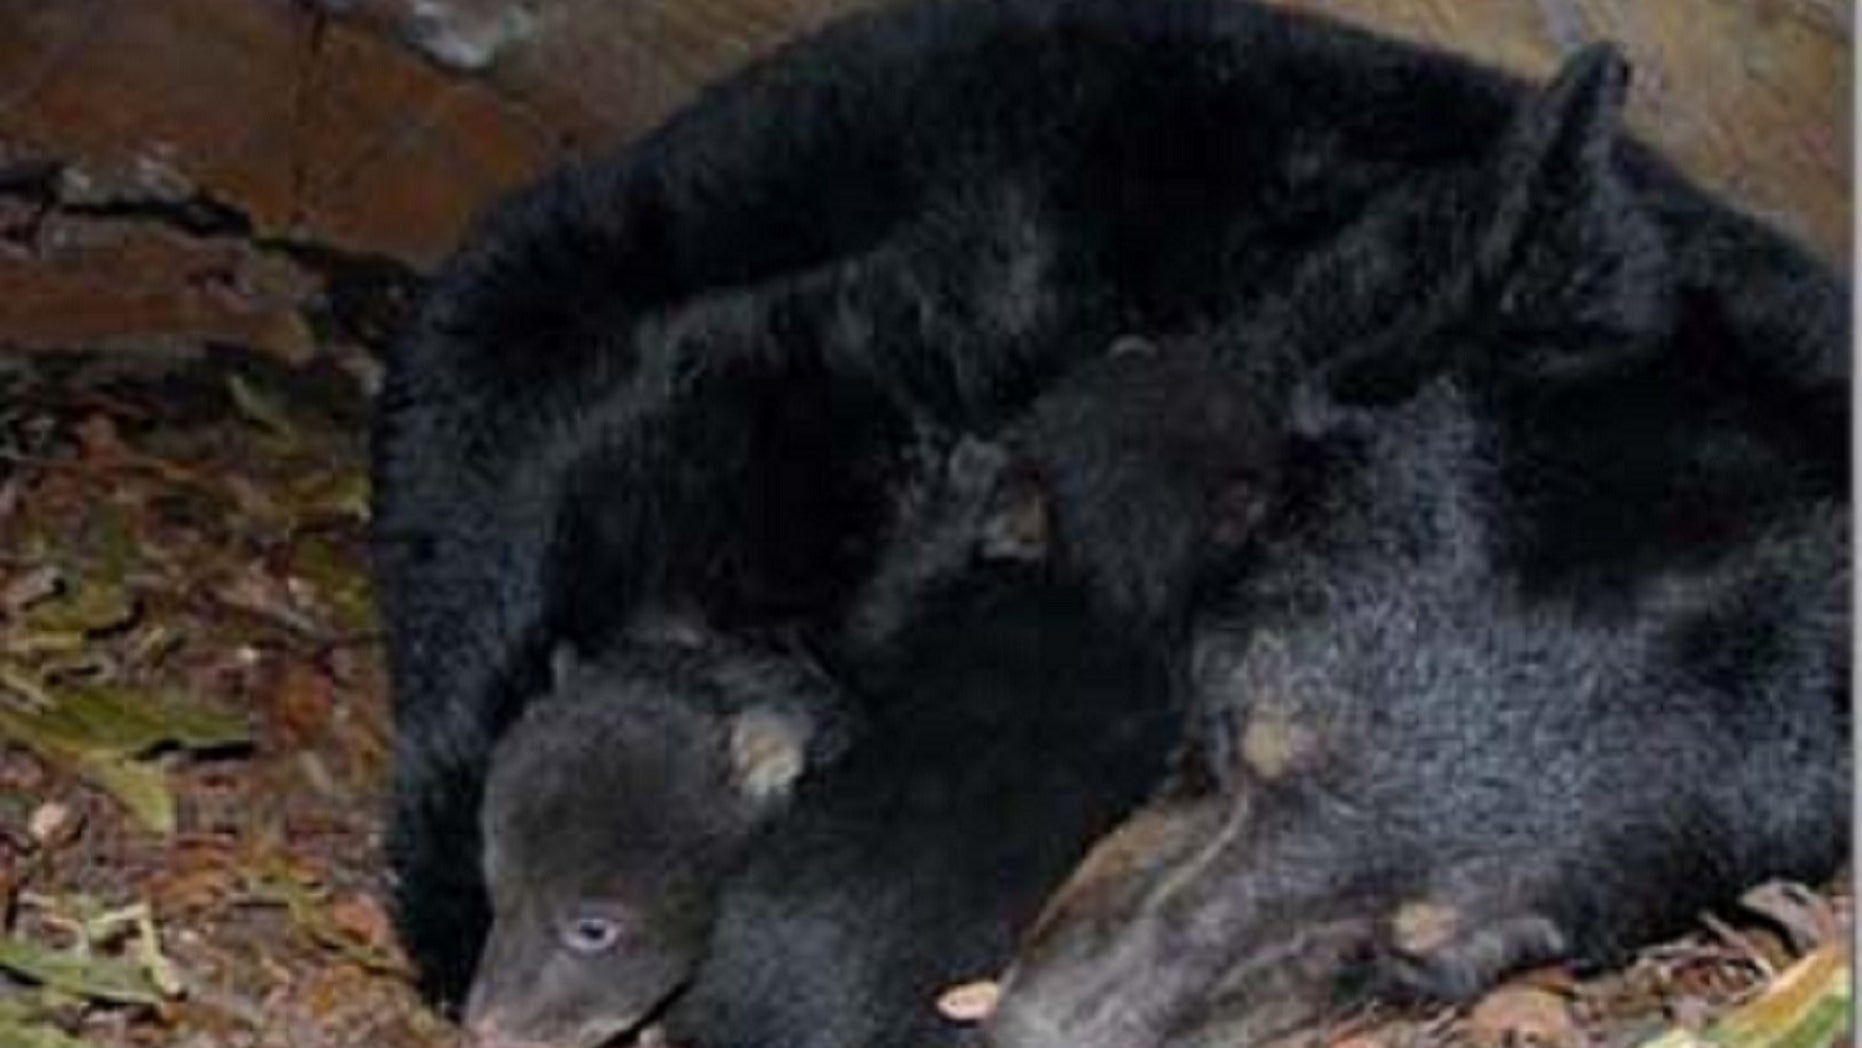 A mother black bear sleeps with her cubs. Andrew Renner and son Owen Renner have been sentenced to jail for the illegal slaughter of the sleeping mother bear and fatal point-blank shooting of her two cubs.